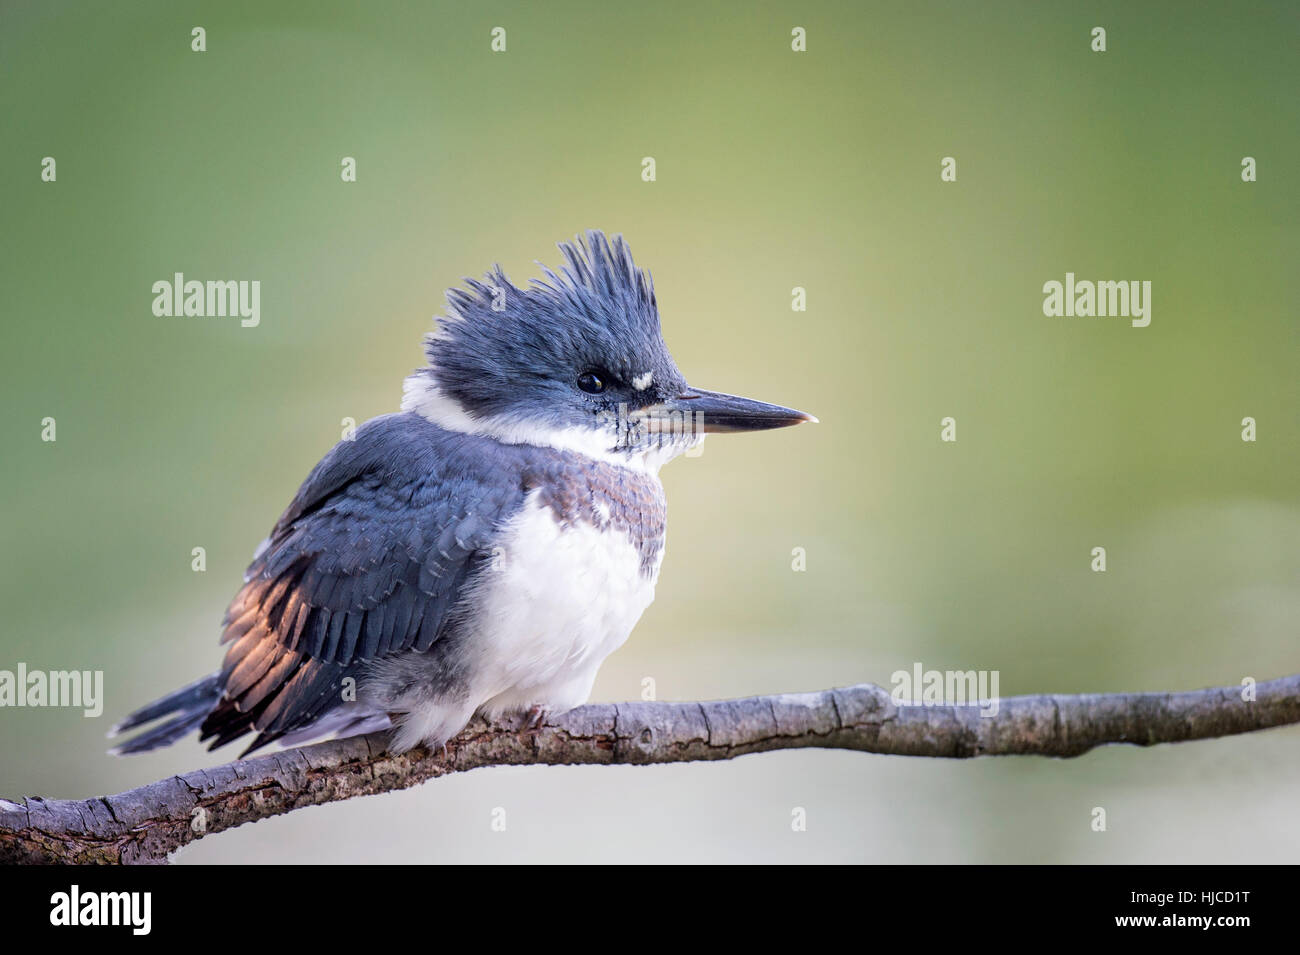 A close photo of a Belted Kingfisher perched on a branch in soft light with a green background. - Stock Image